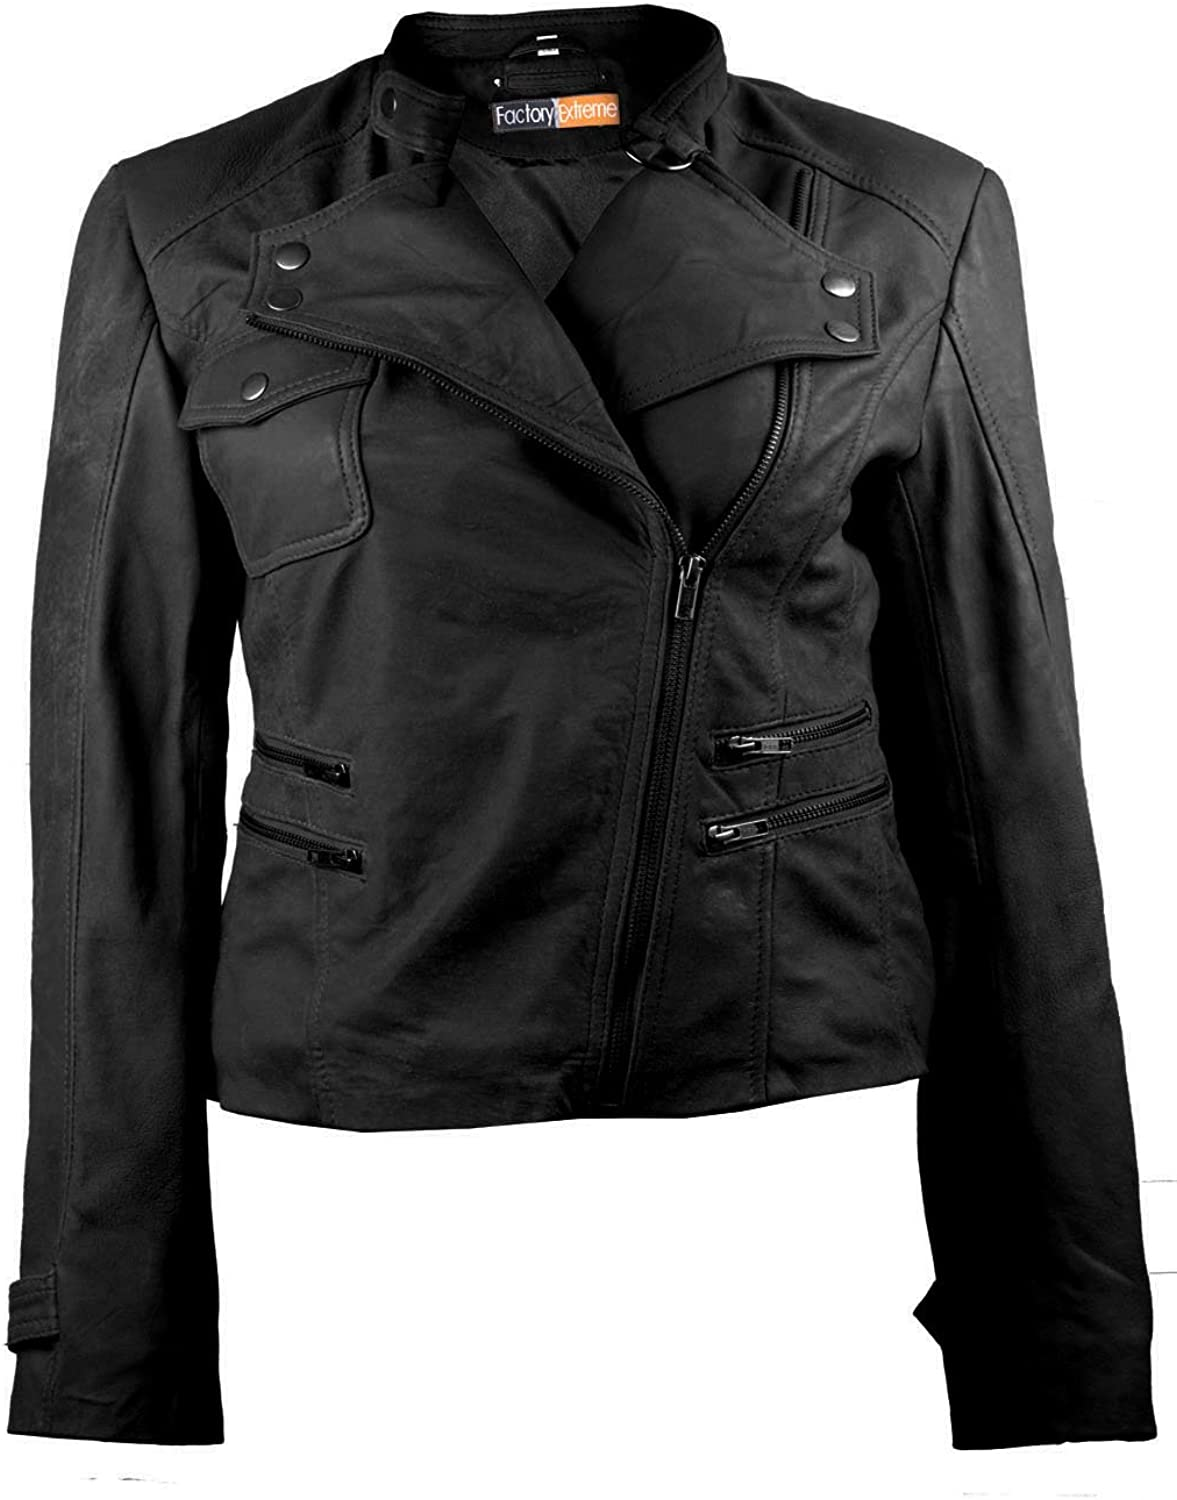 FactoryExtreme FE Brando Moto Biker Leather Jacket Women in Black Tan   Distressed Stylish Real Racer Style Coat